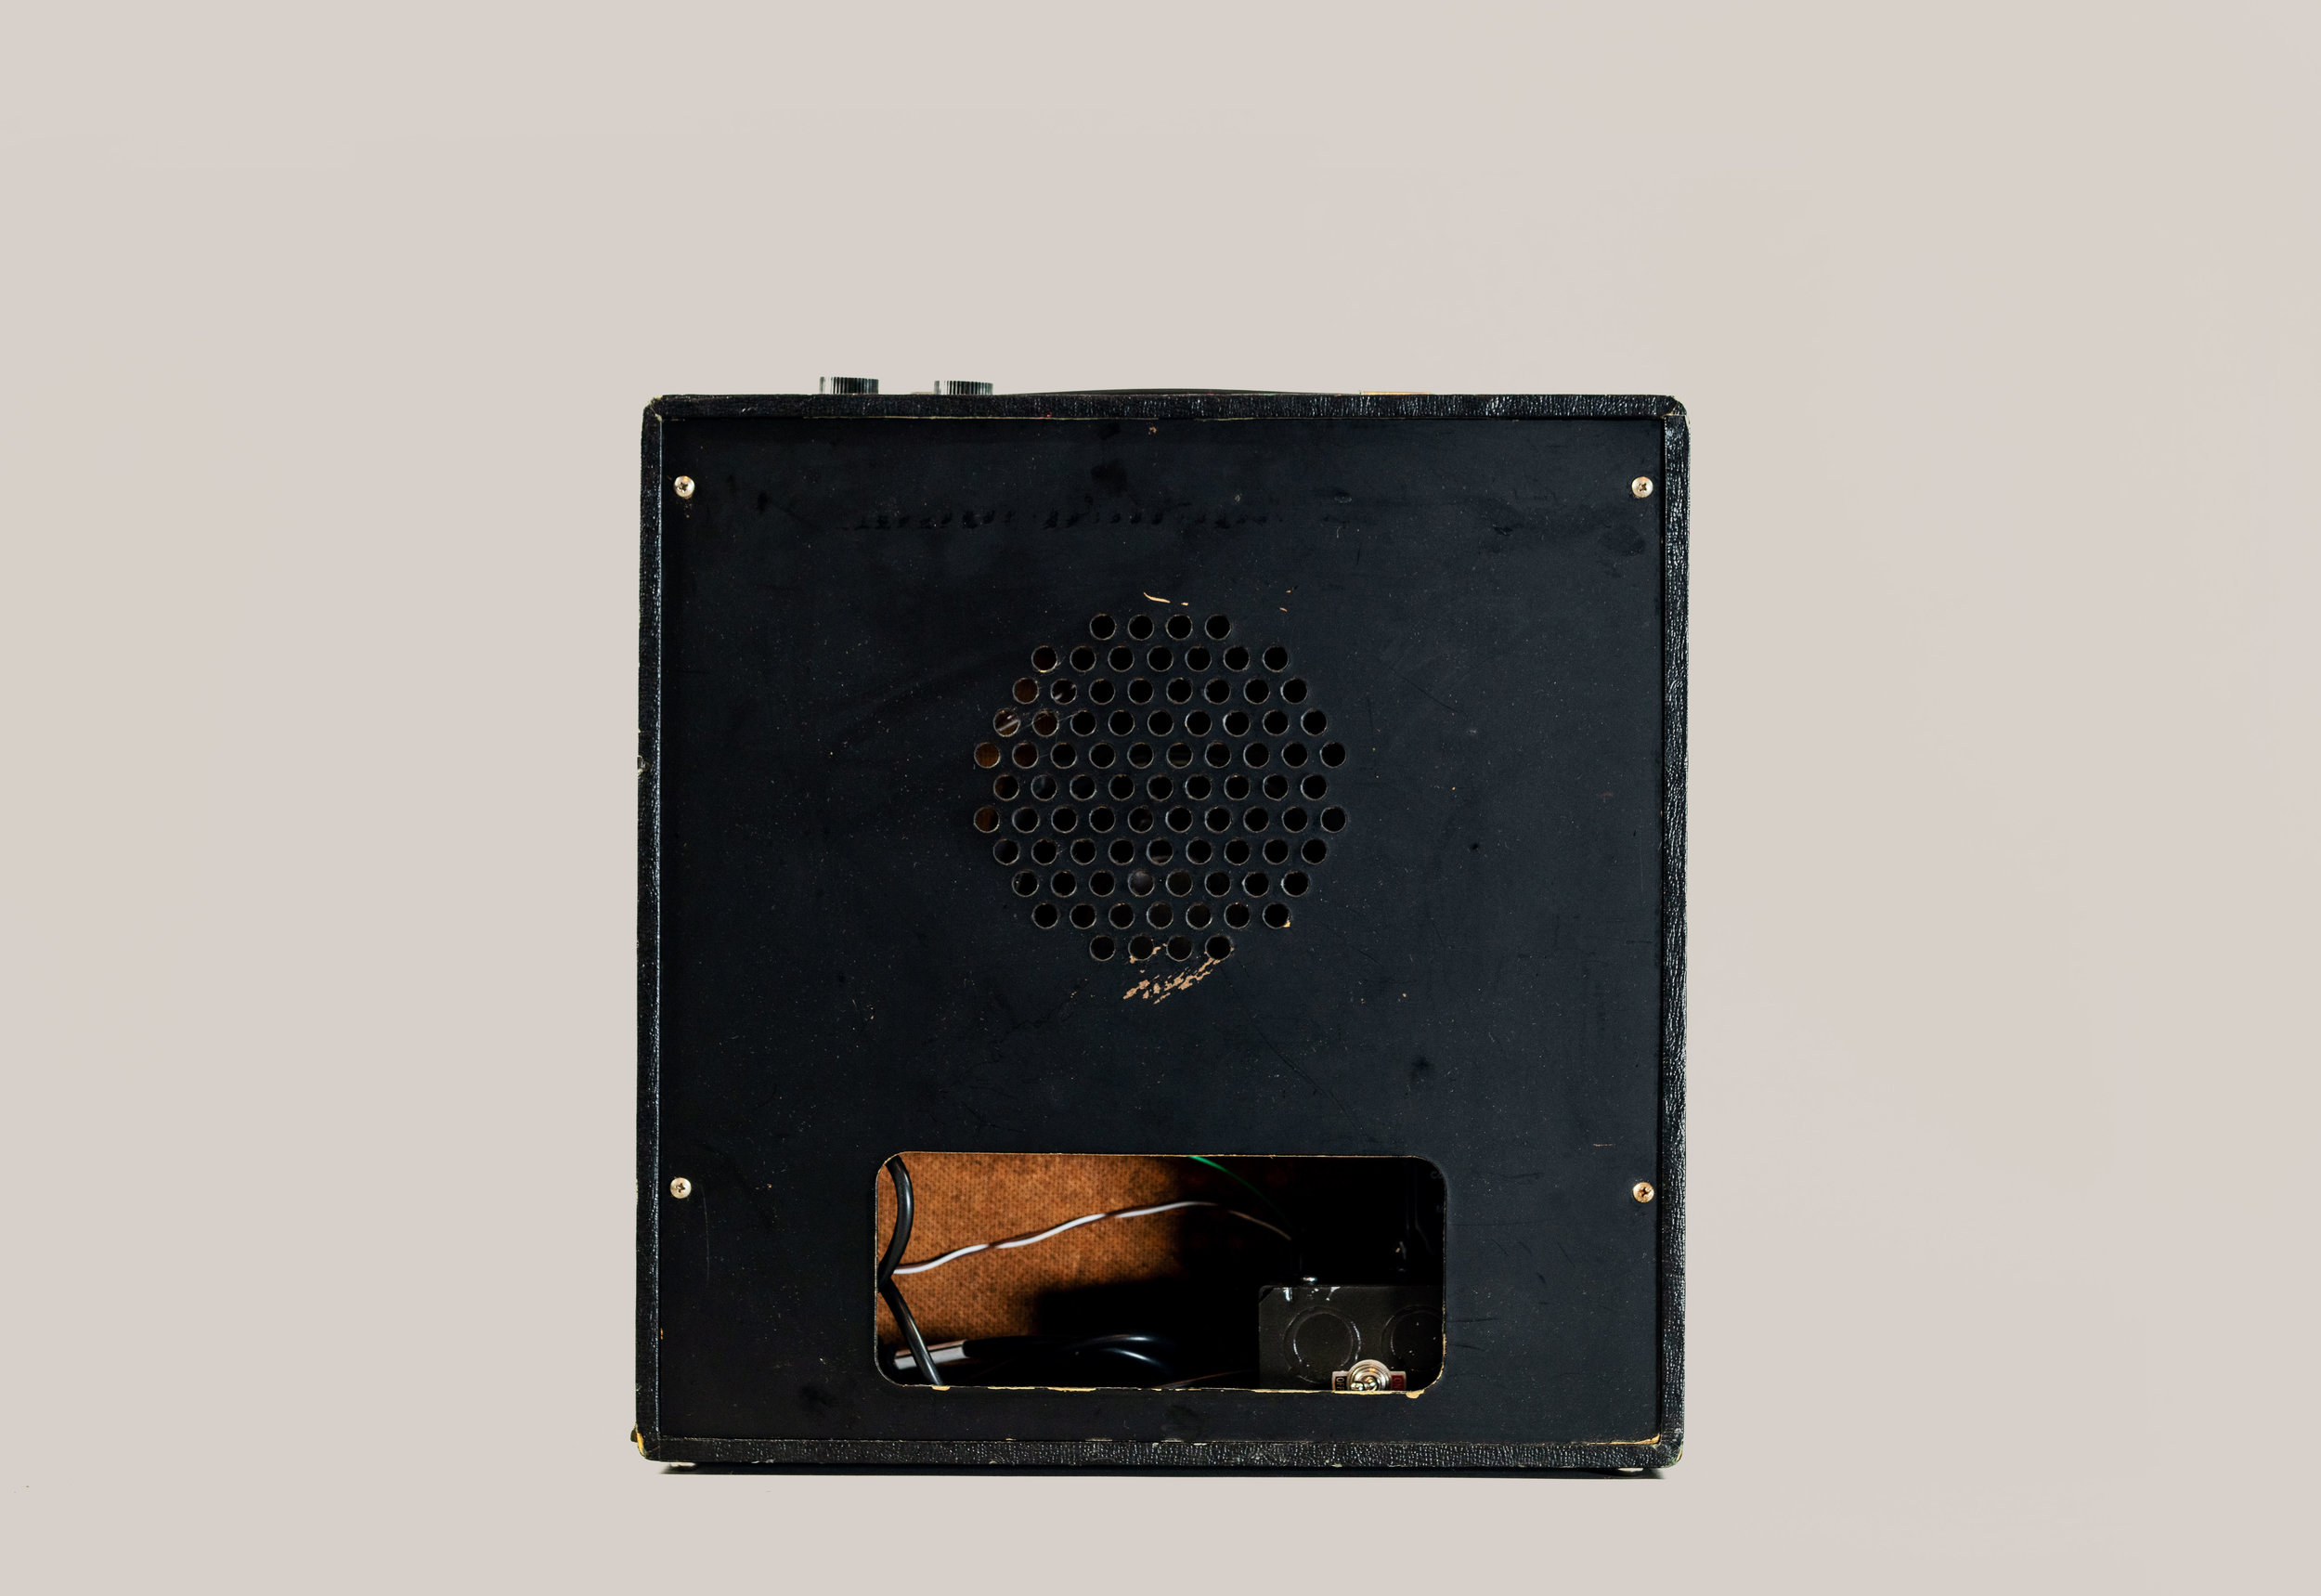 The switch was originally on the volume knob. We moved it to the back, on the power supply chassis.